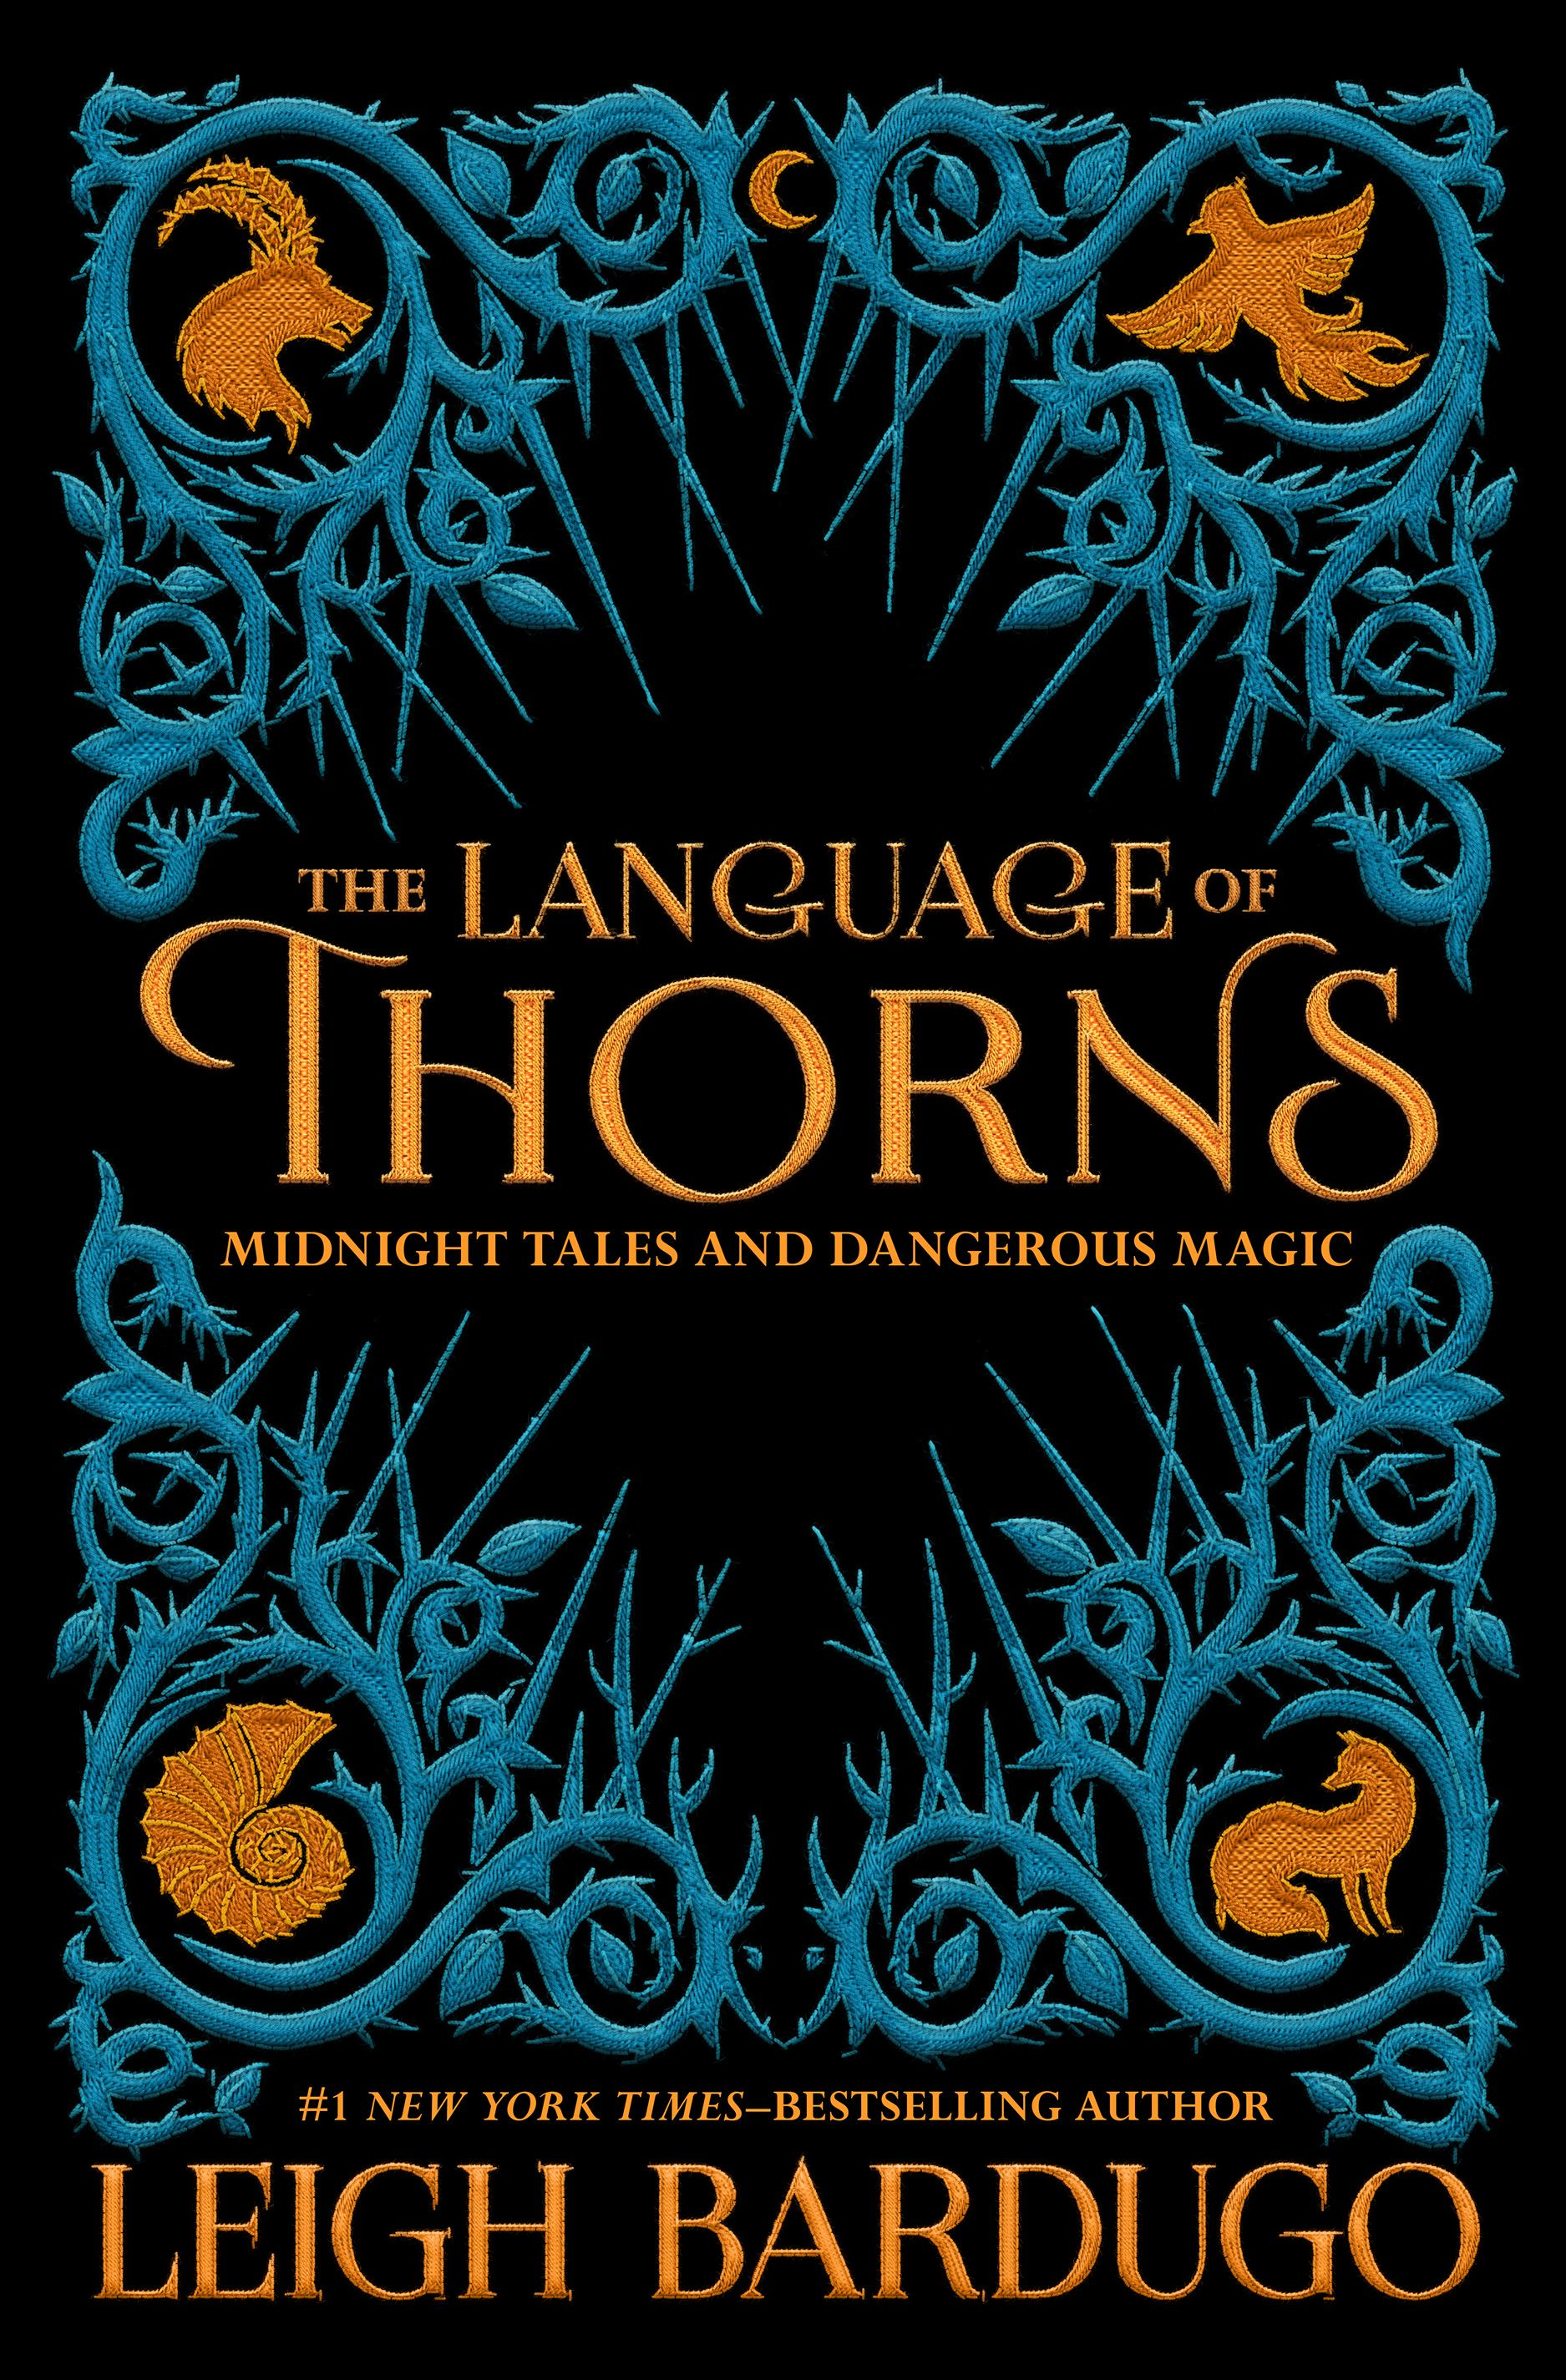 #coverreveal The Language Of Thorns: Midnight Tales And Dangerous Magic By  Leigh Bardugo